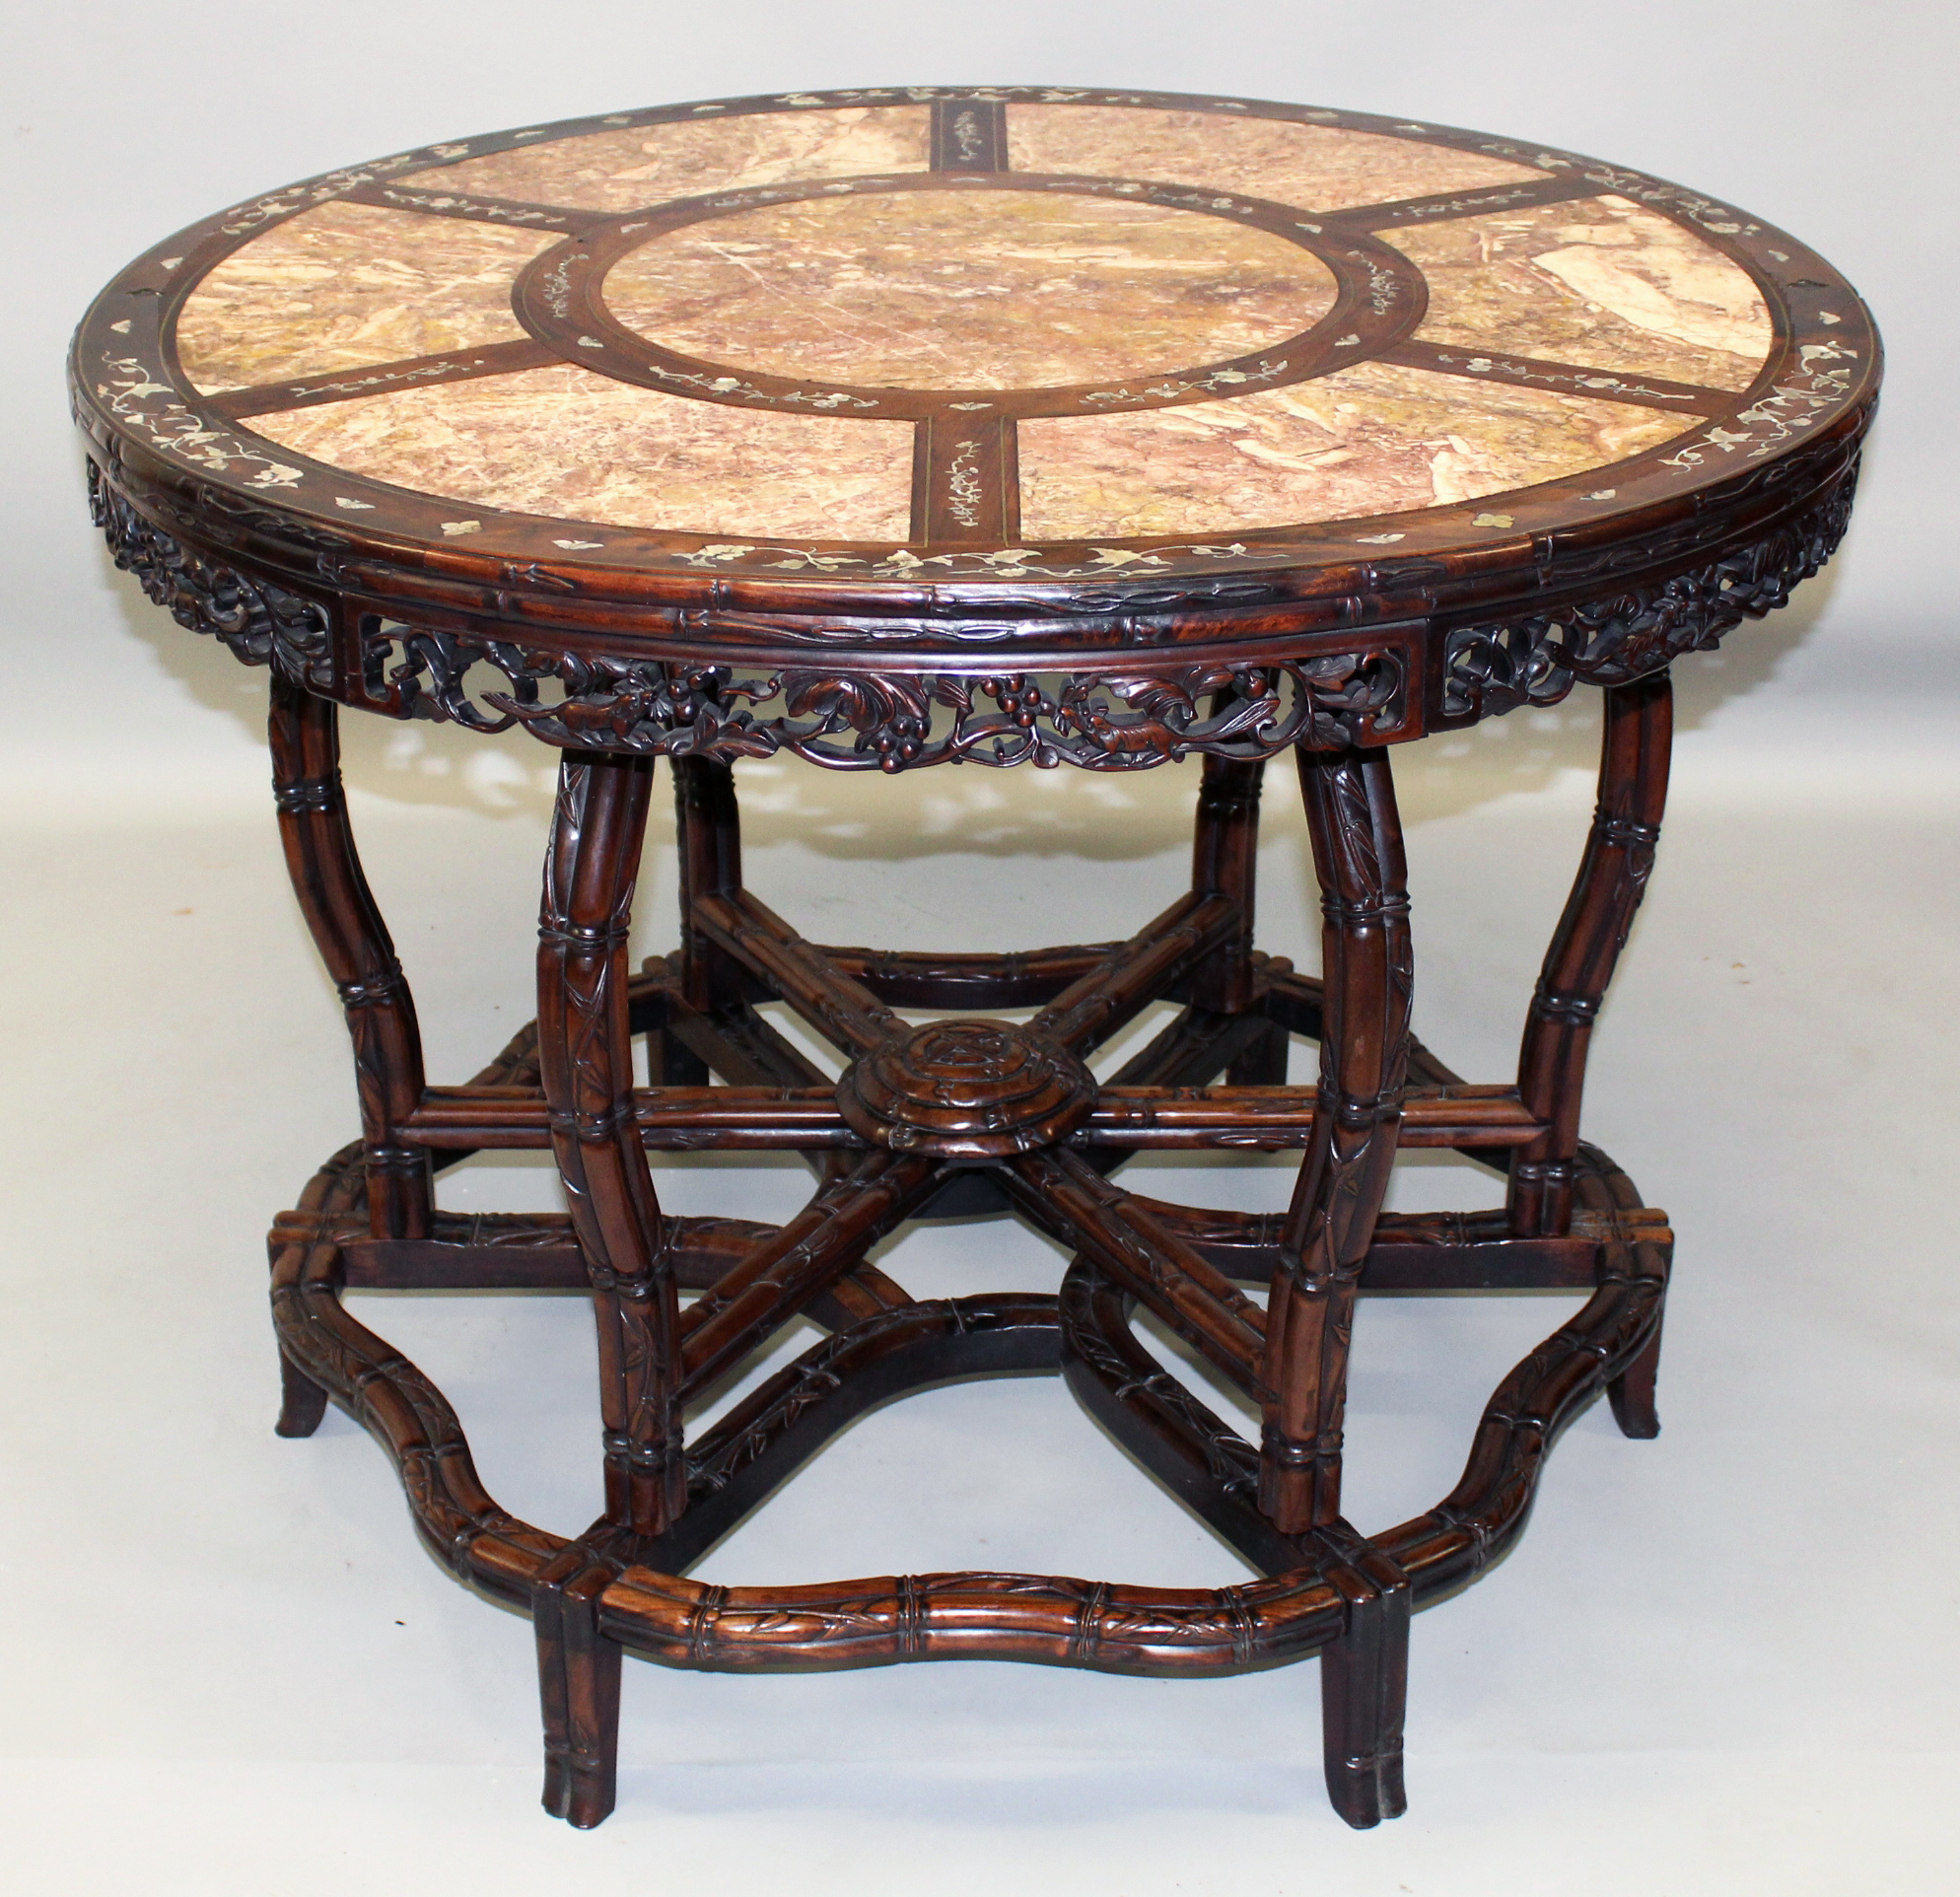 A large good quality 19th century Chinese circular pink marble top and mother-of-pearl inlaid carved Hongmu hardwood table/Auctioneers and Valuers